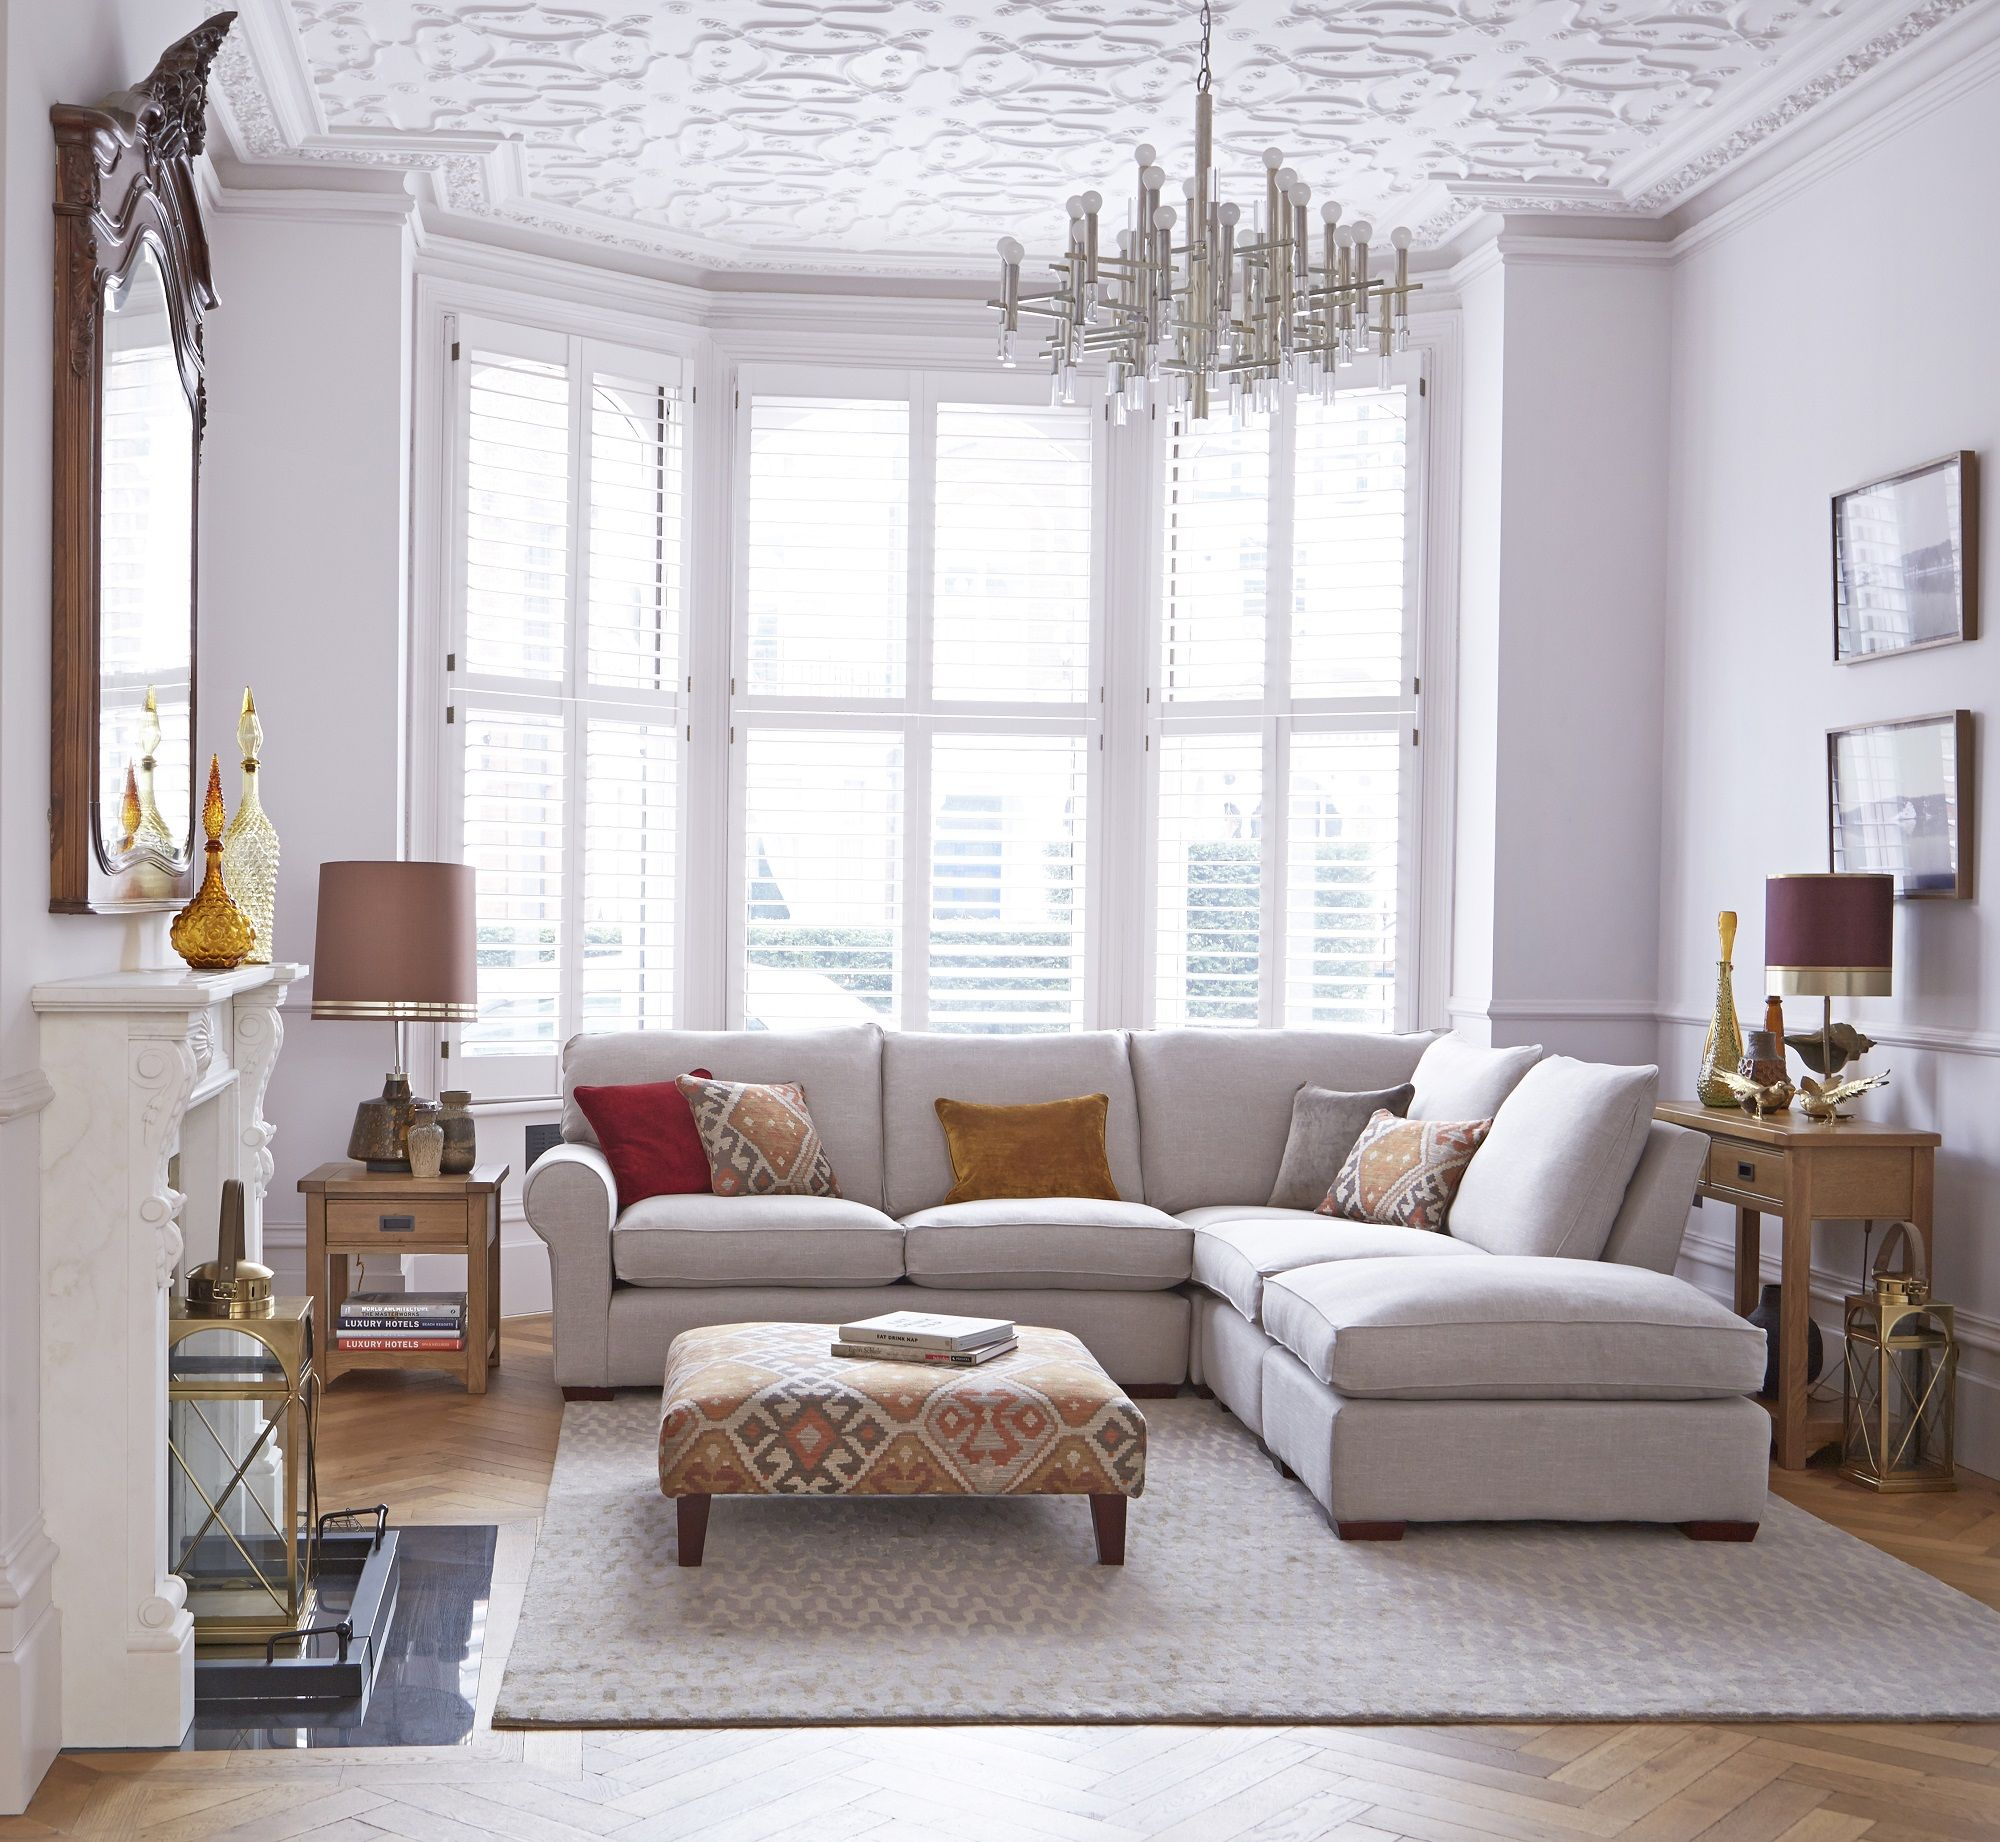 Modular sofas are wonderfullyversatile like our Isabelle featured ...